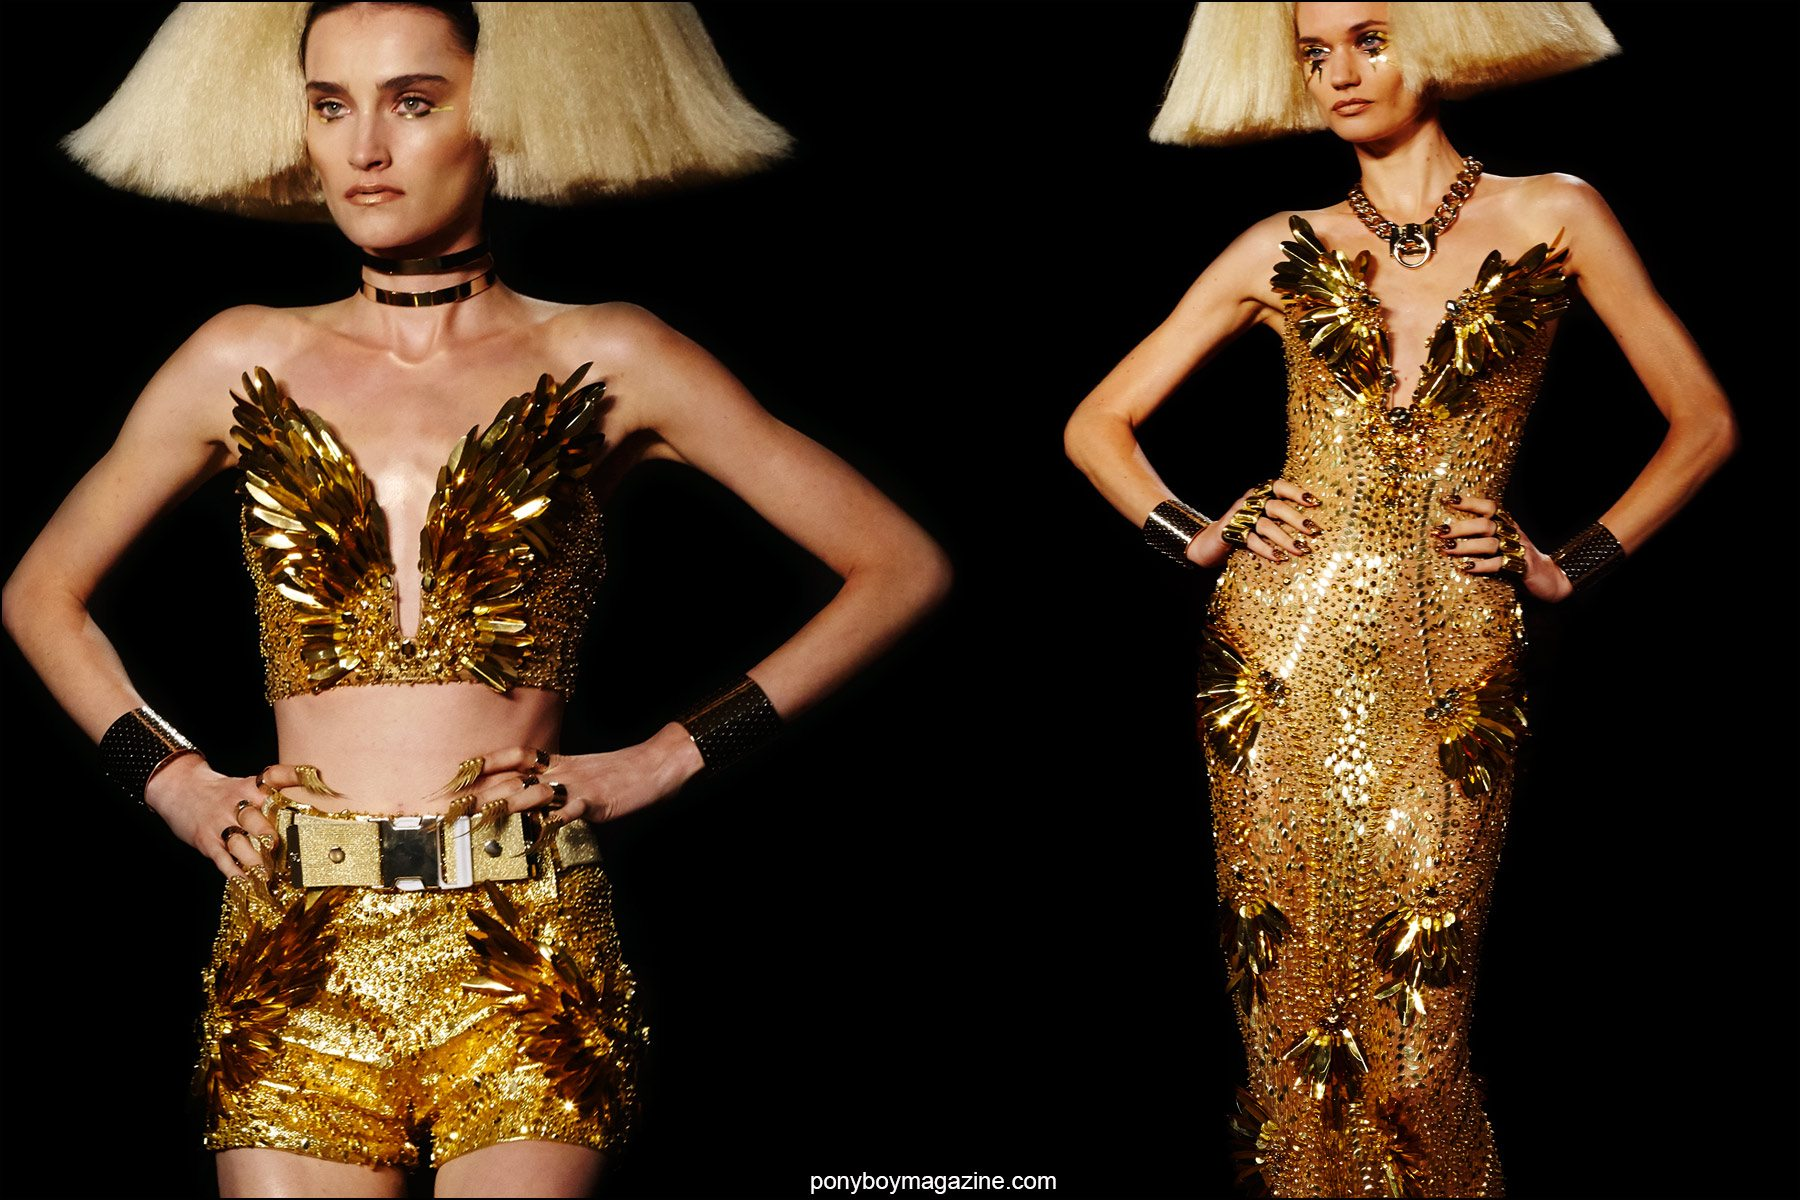 Fabulous golden creations on the Blonds Spring/Summer 2016 runway, photographed by Alexander Thompson for Ponyboy magazine NY.